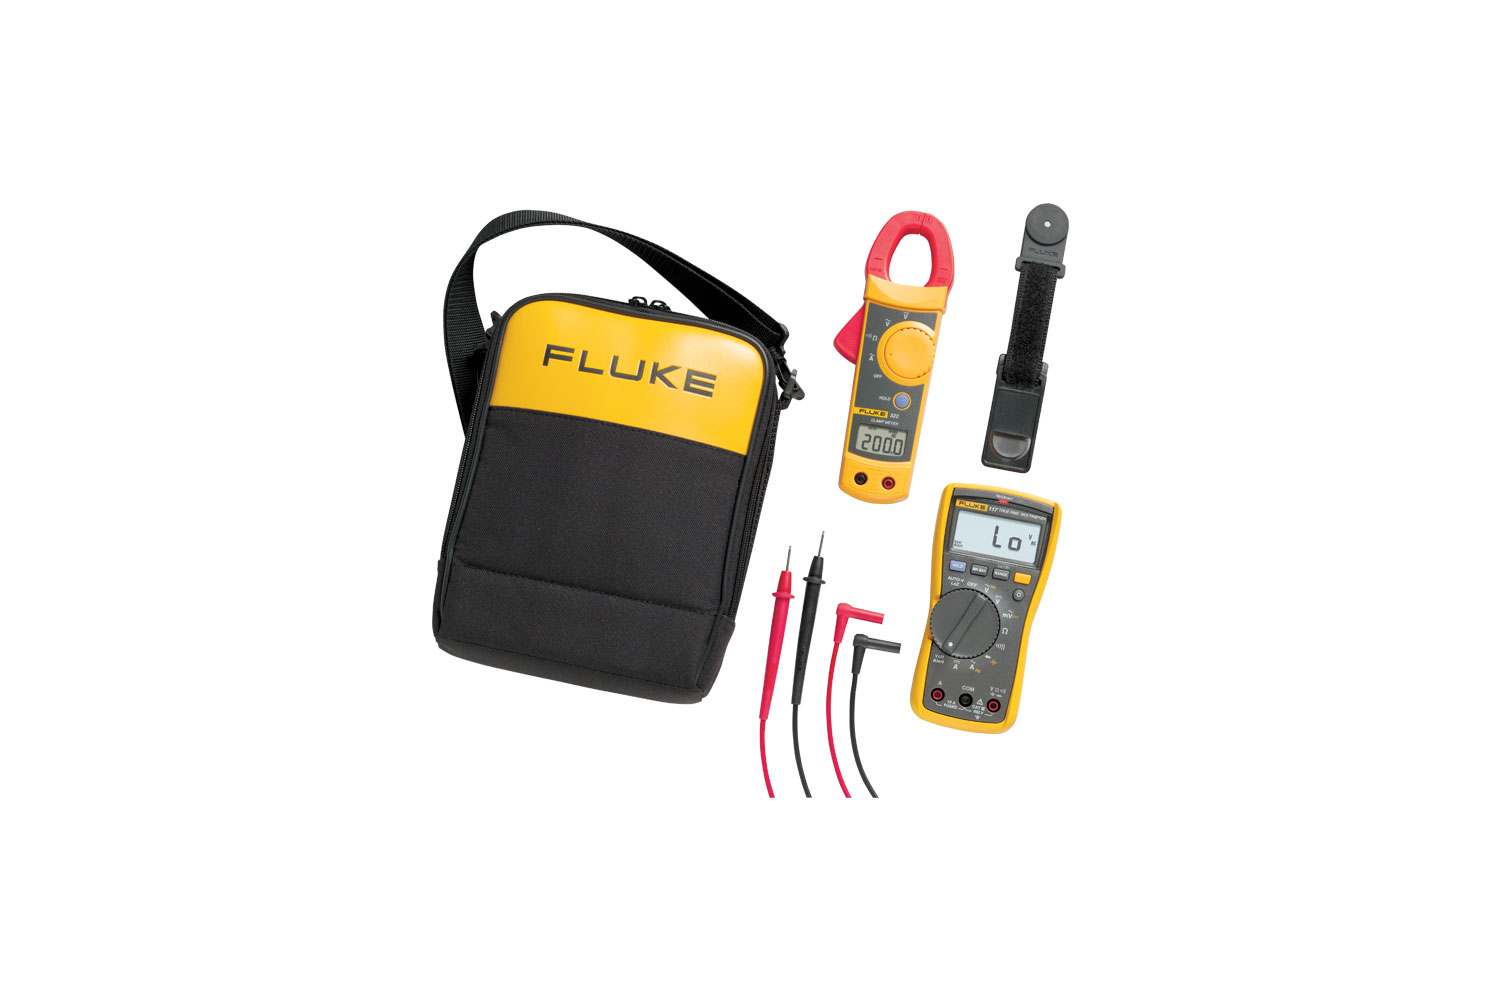 Fluke 117 The Ideal Multimeter For Electricians Low Voltage Circuit Tester Besides Ohms Symbol On